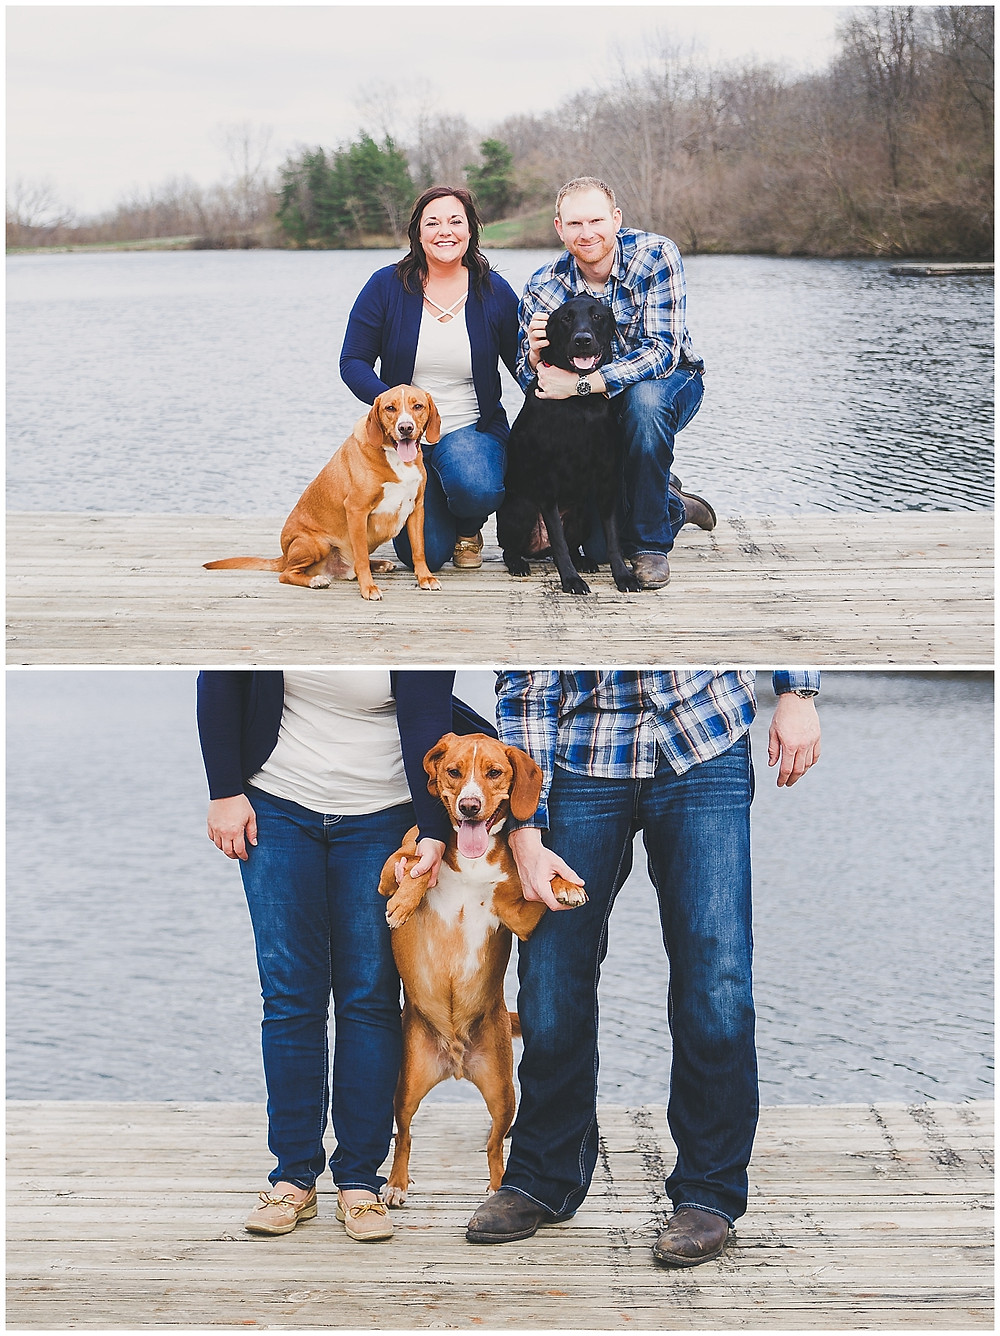 IOWA ENGAGEMENT WITH DOGS ON POND